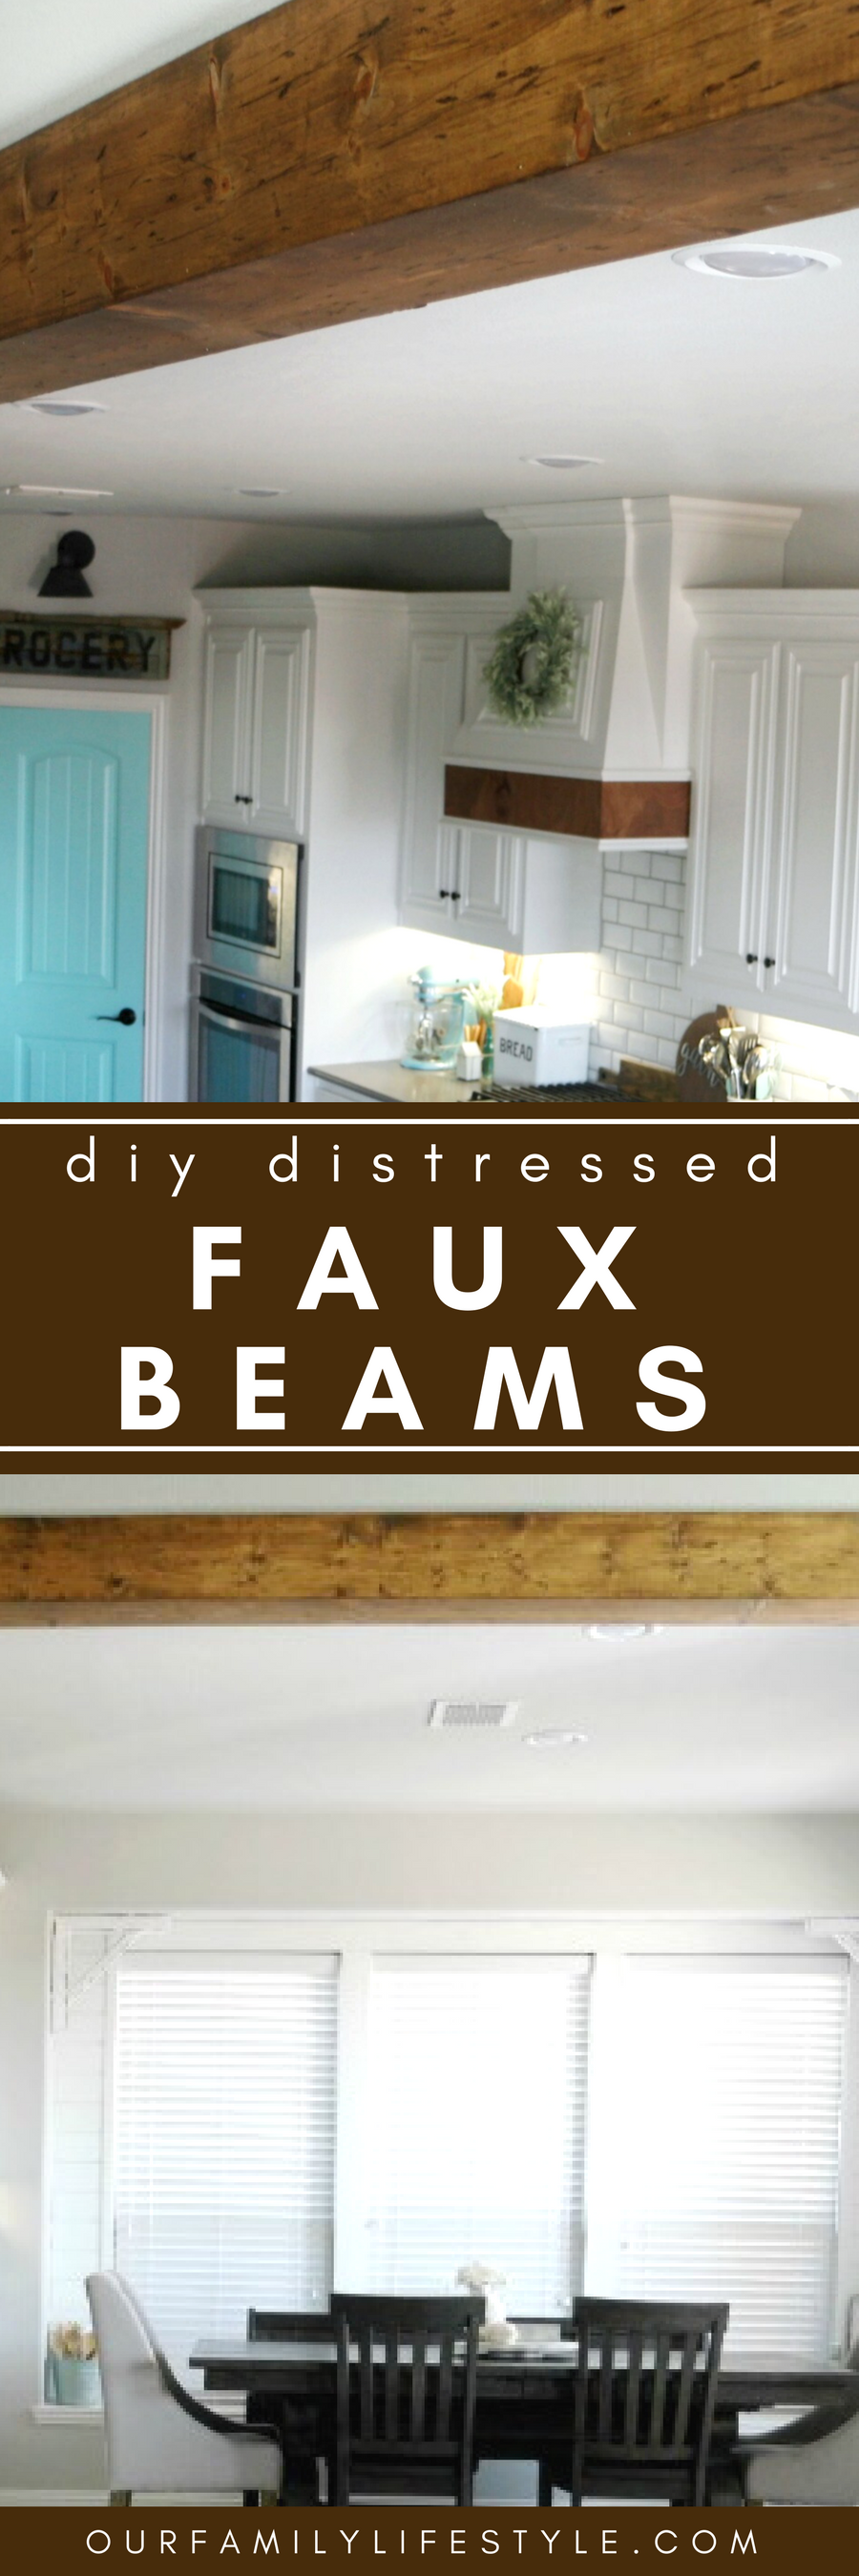 DIY Distressed Faux Beams - See how we took three common pine boards, beat them with chicken wire and hand tools to give them a distressed look; then hung them as faux beams in our house!